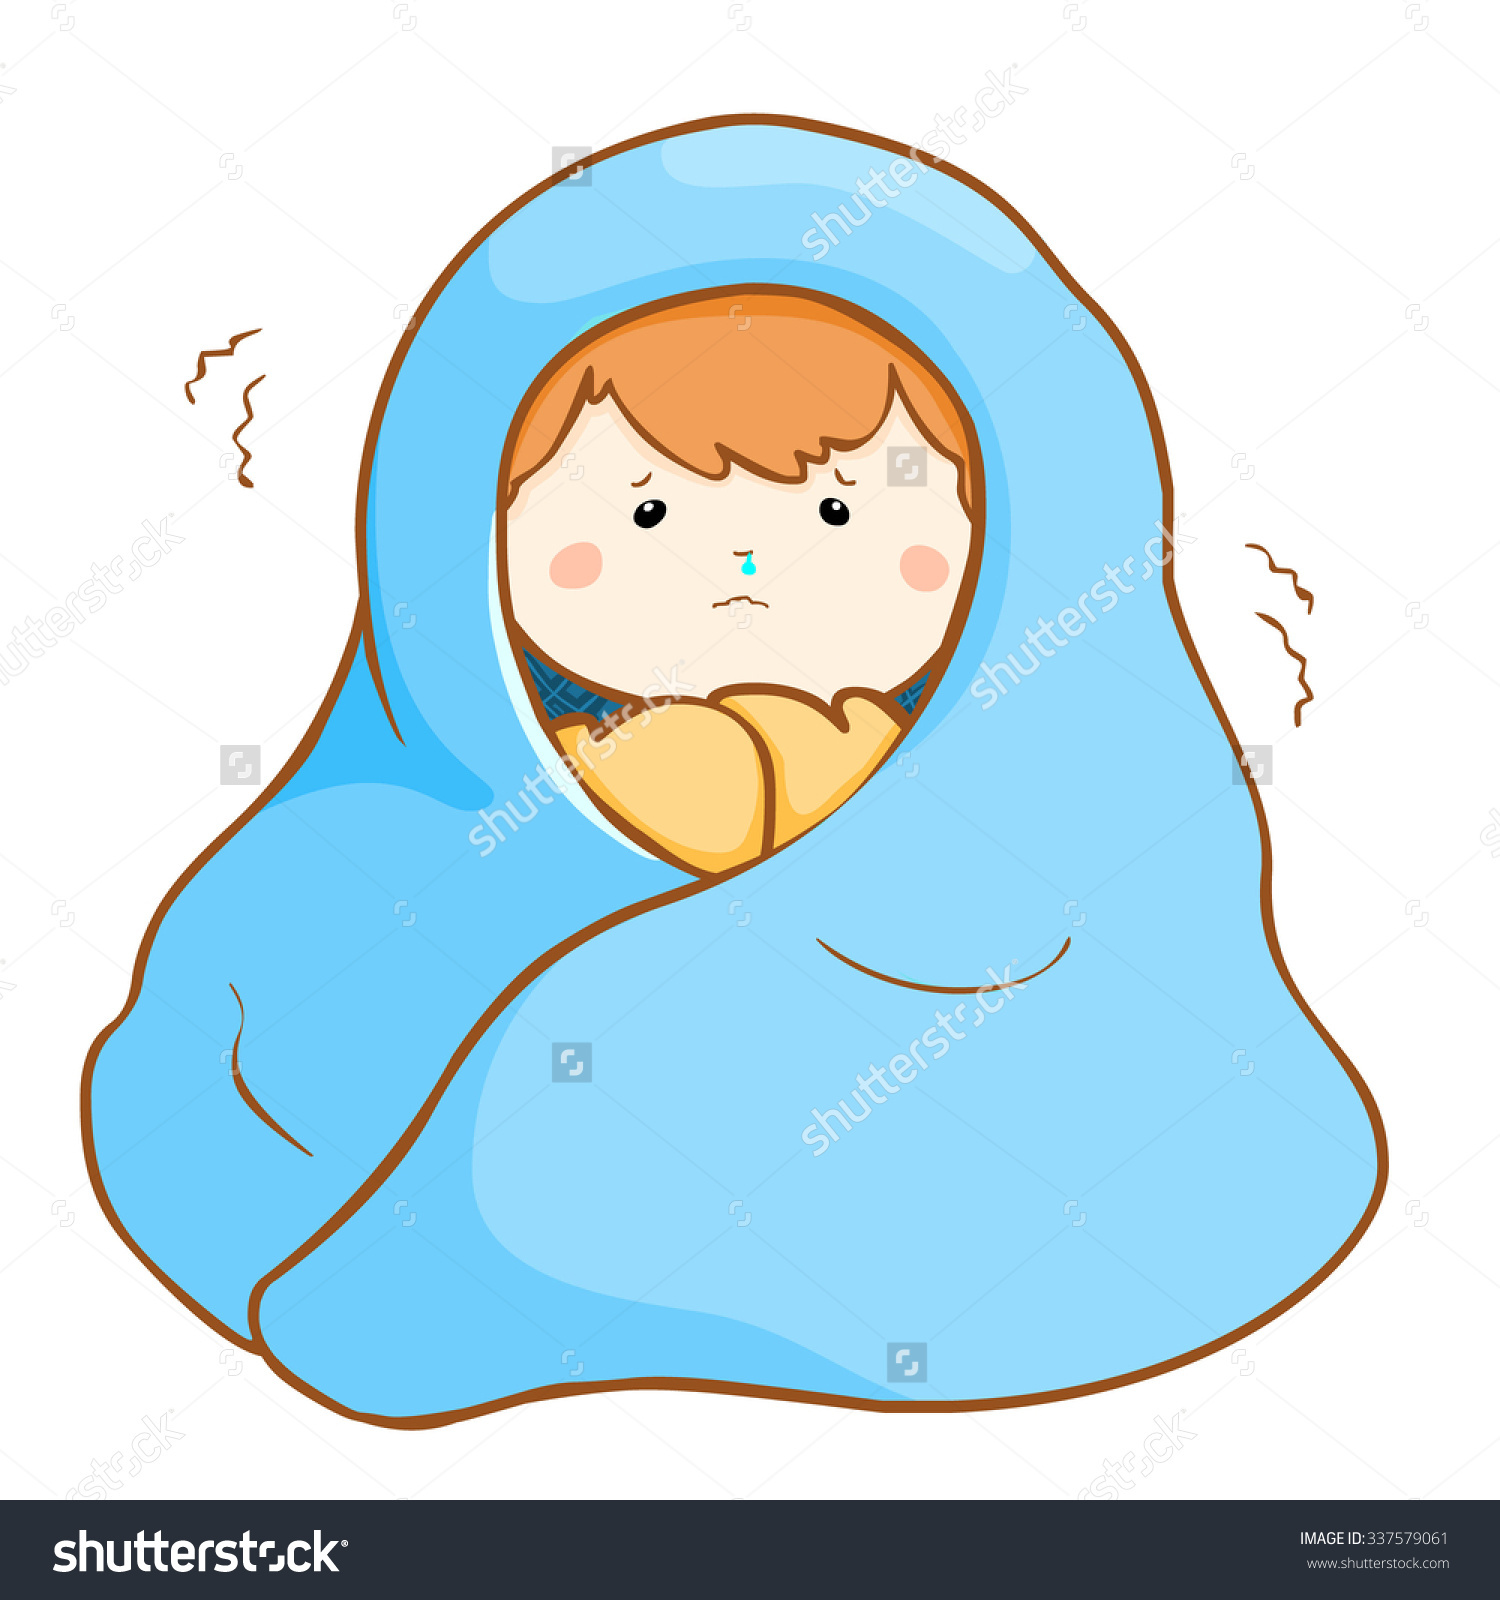 Child with fever clipart.